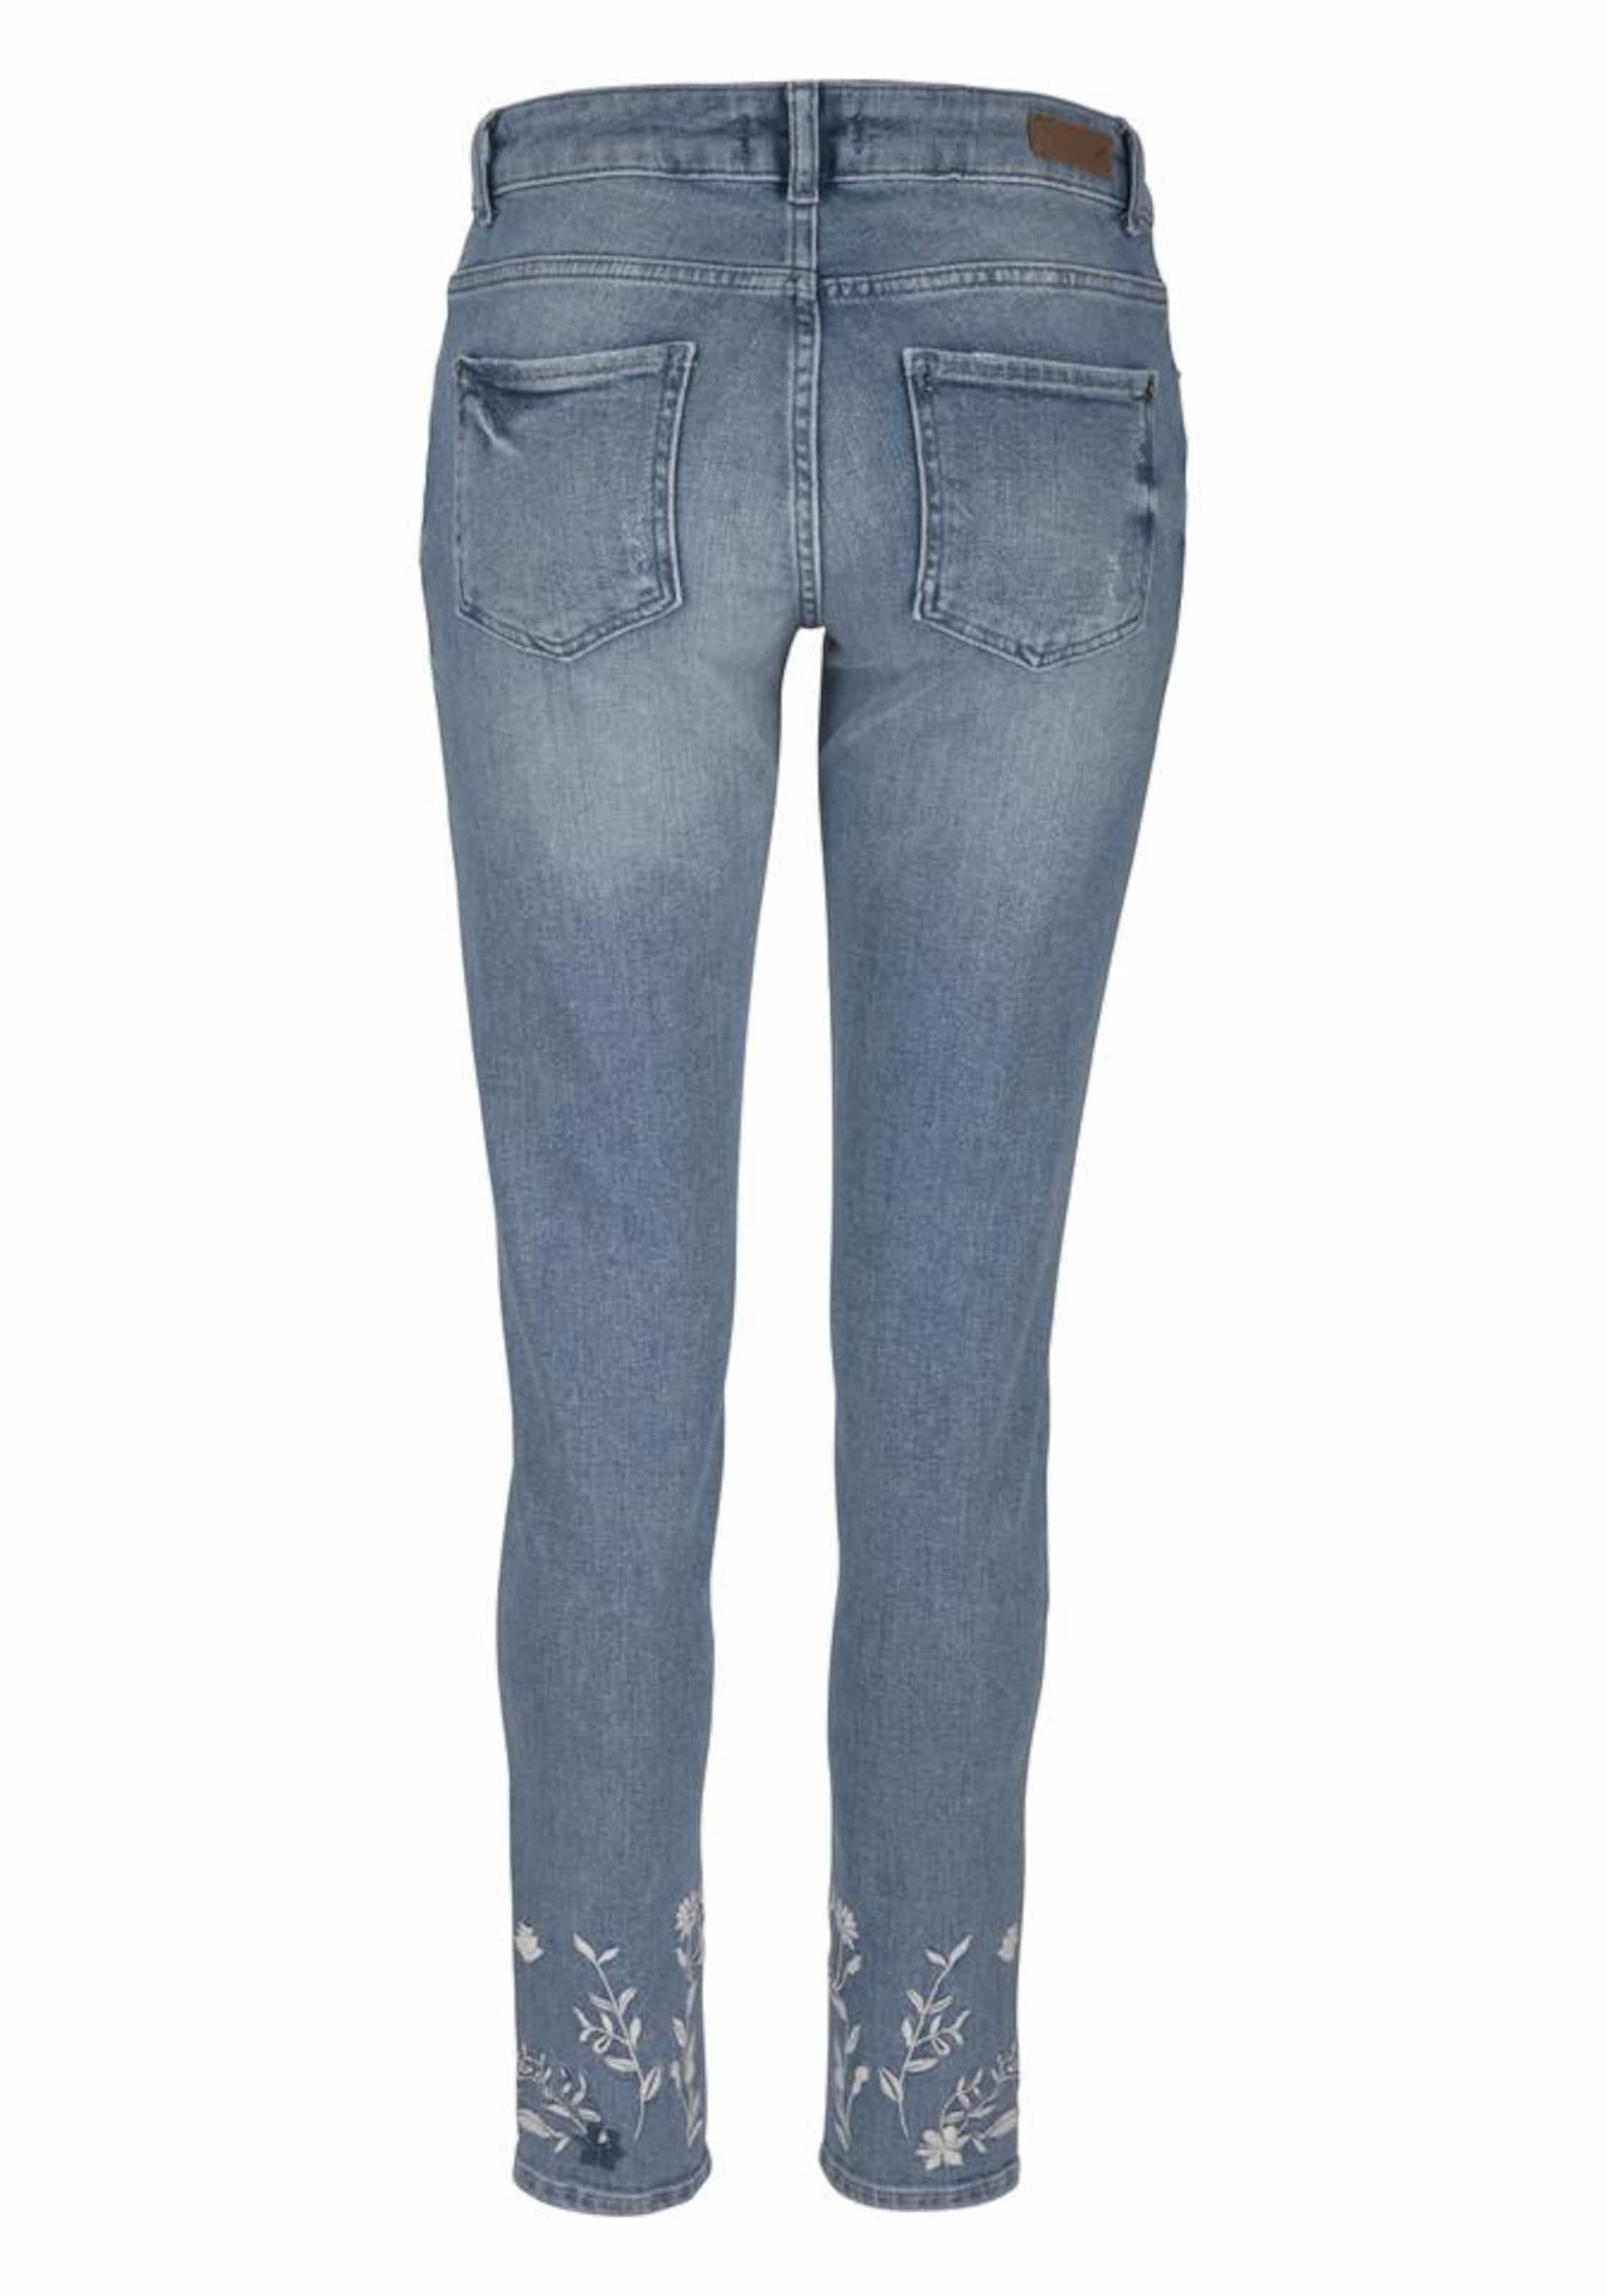 Label Red jeans Denim fit oliver Skinny Blue S In TlKJ31cF